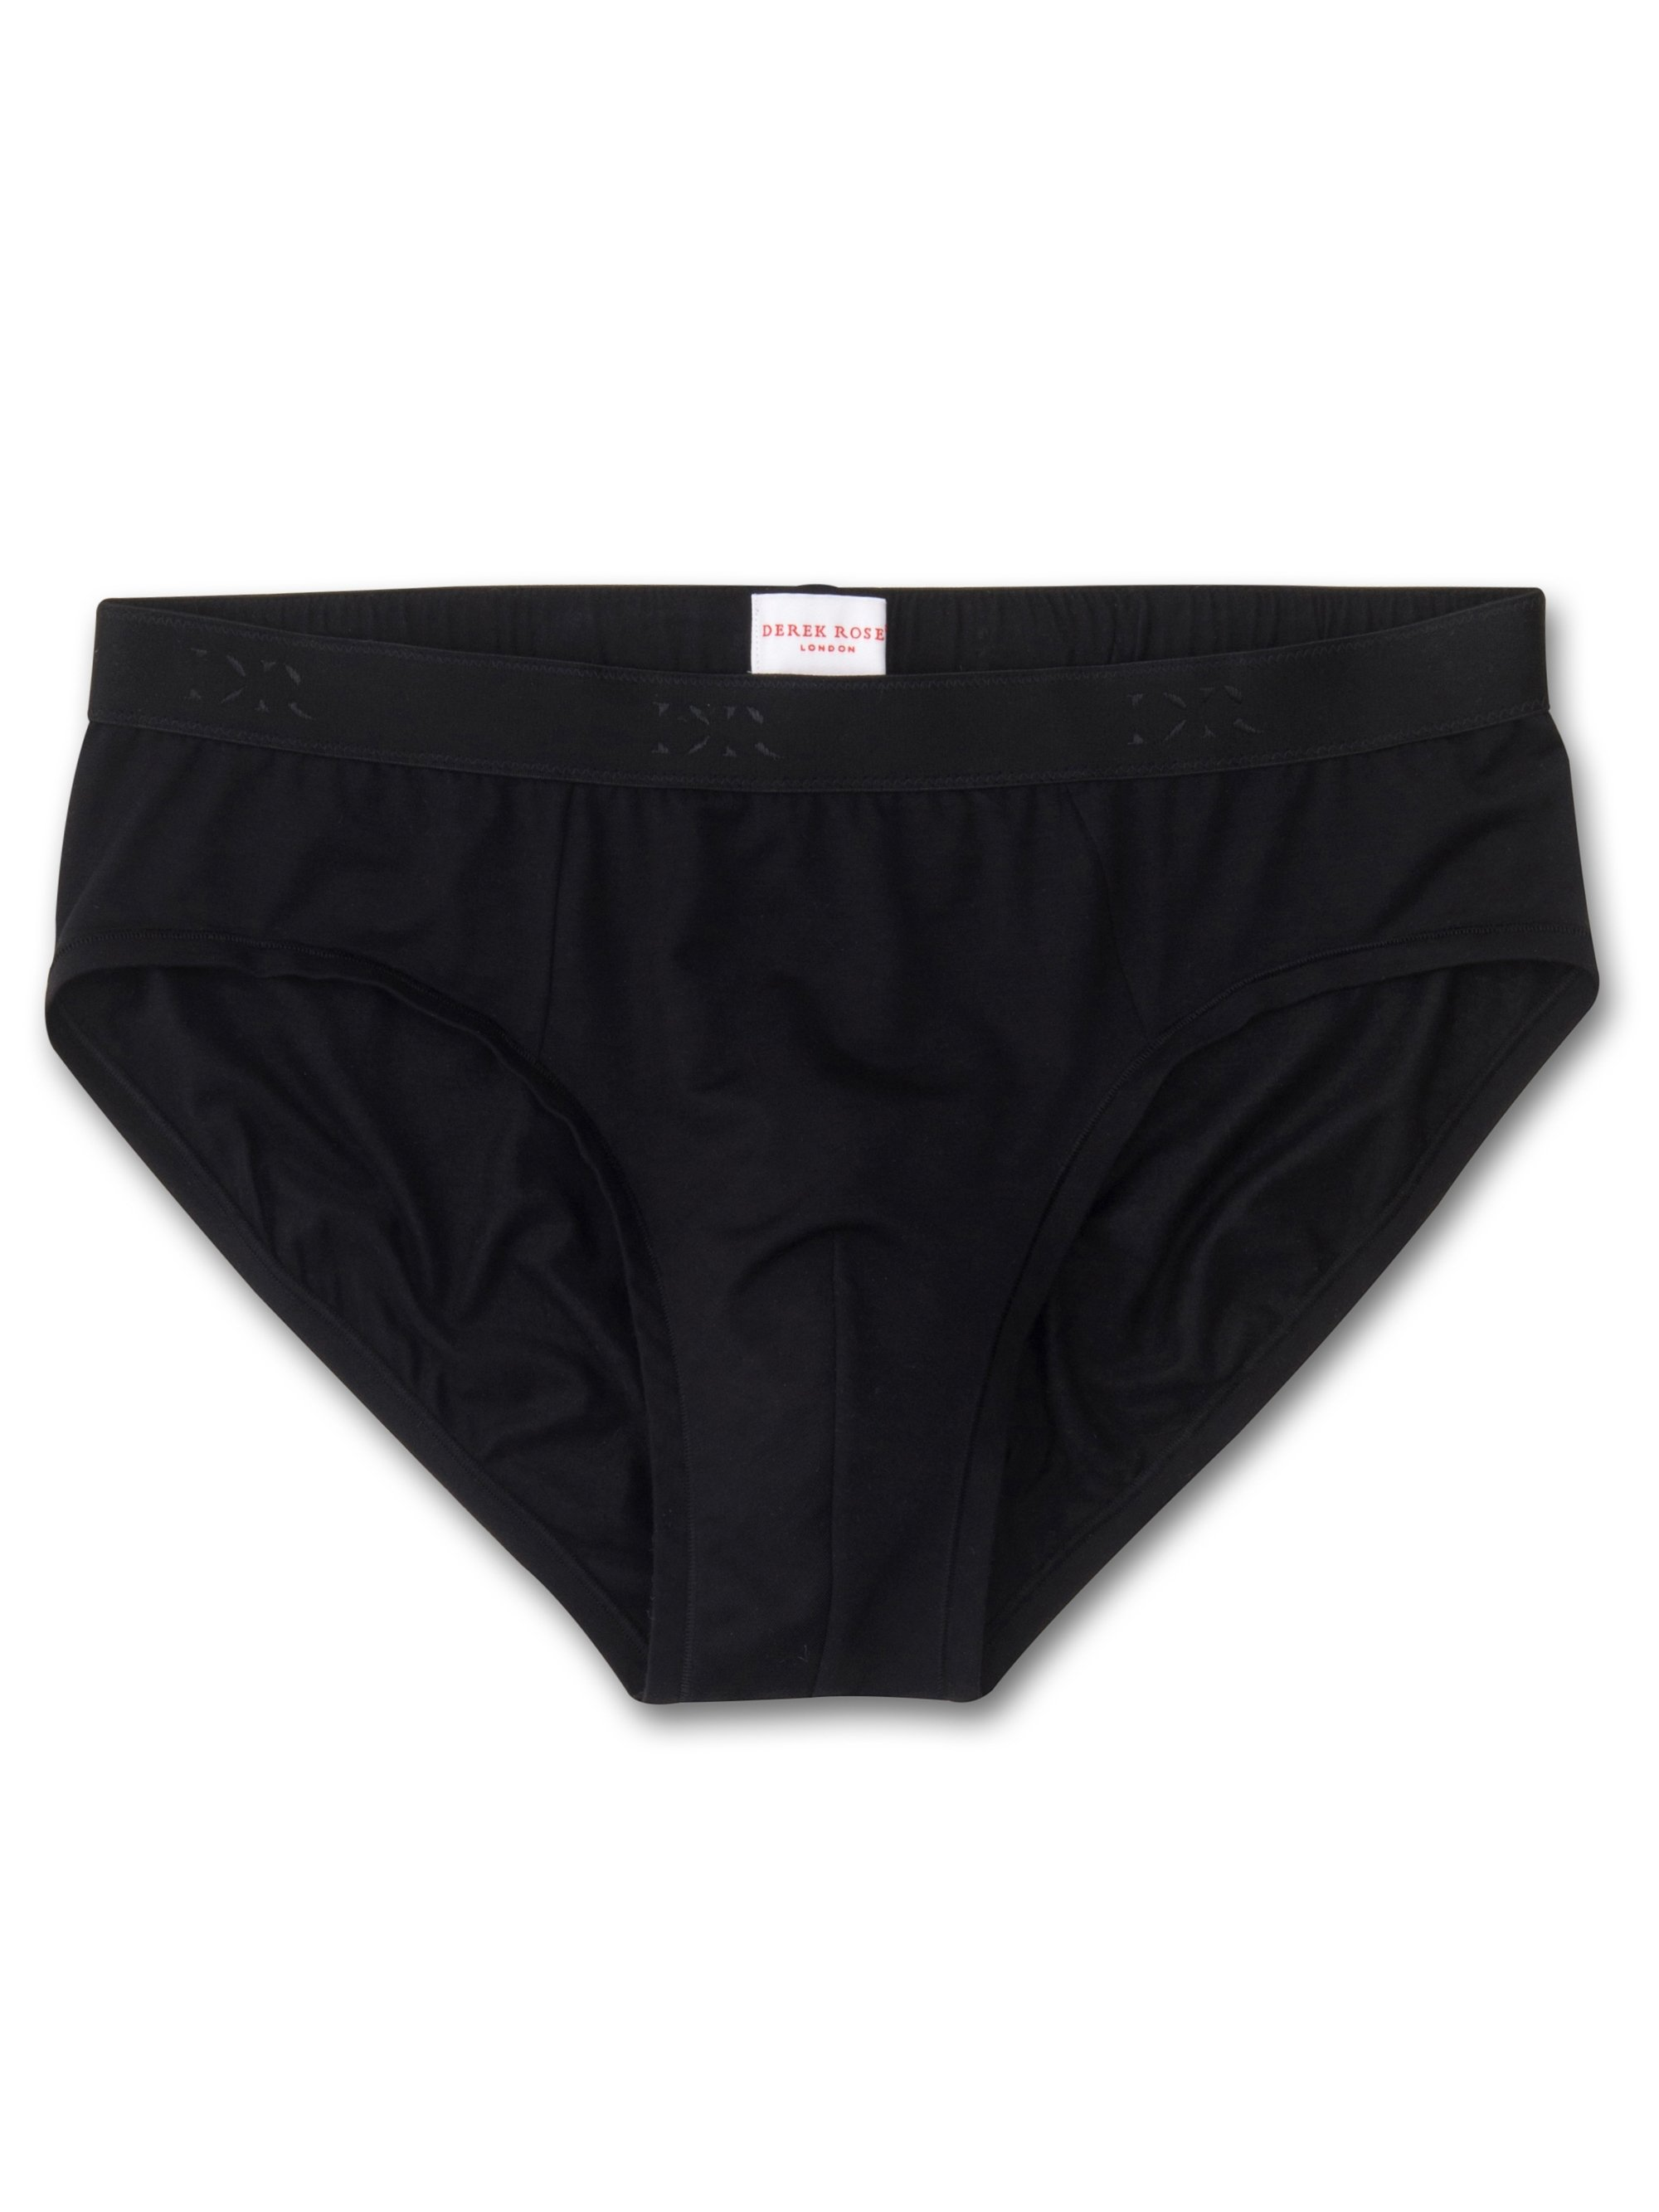 Men's Mid Briefs Alex Micro Modal Stretch Black